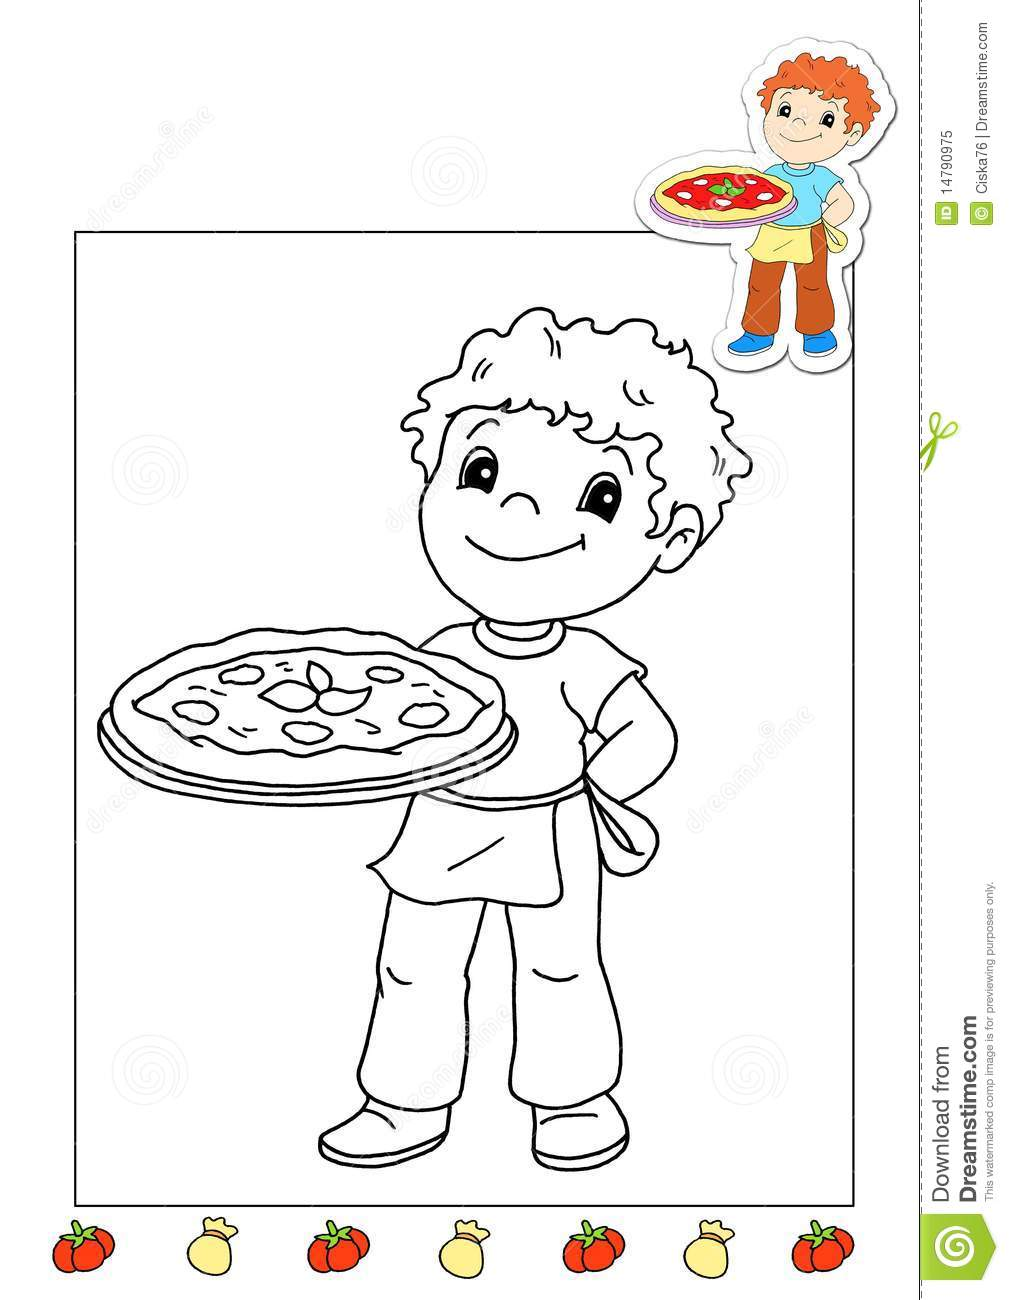 Coloring pages 8 1 2 x 11 - Coloring Pages 8 1 2 X 11 35